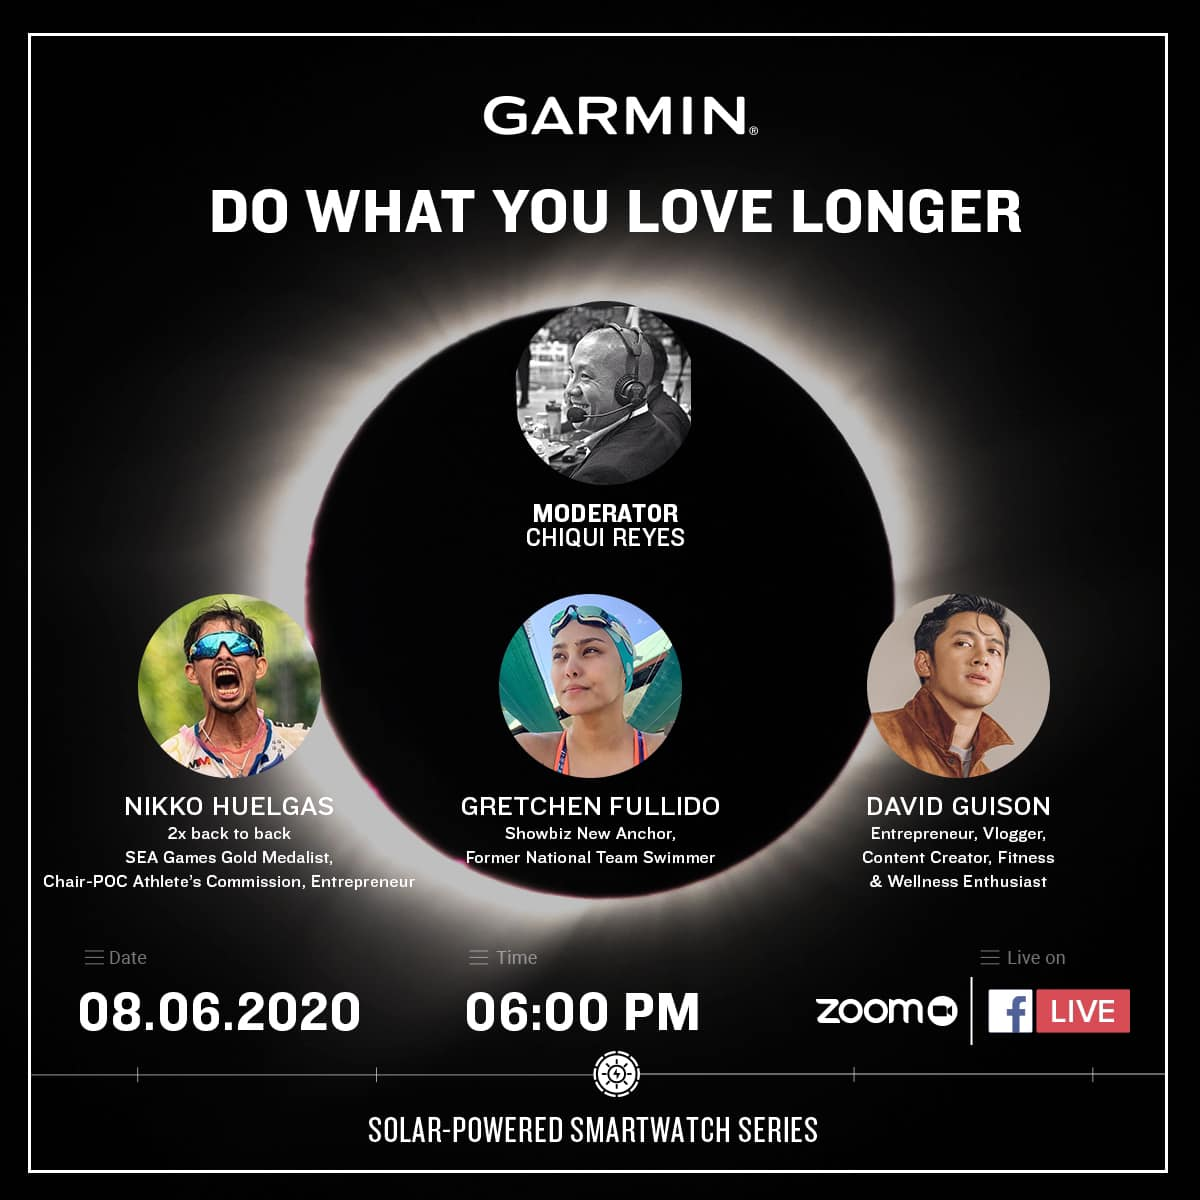 Join us later at 6PM as we unveil the ultimate solar-powered smartwatch series.  Push your performance to a whole new level. Go longer. Explore longer. Train longer. Do what you love, longer.  Hosted by Chiqui Reyes, together with Nikko Huelgas, Gretchen Fullido, and David Guison. ... Let's talk about technology, fitness & wellness, and